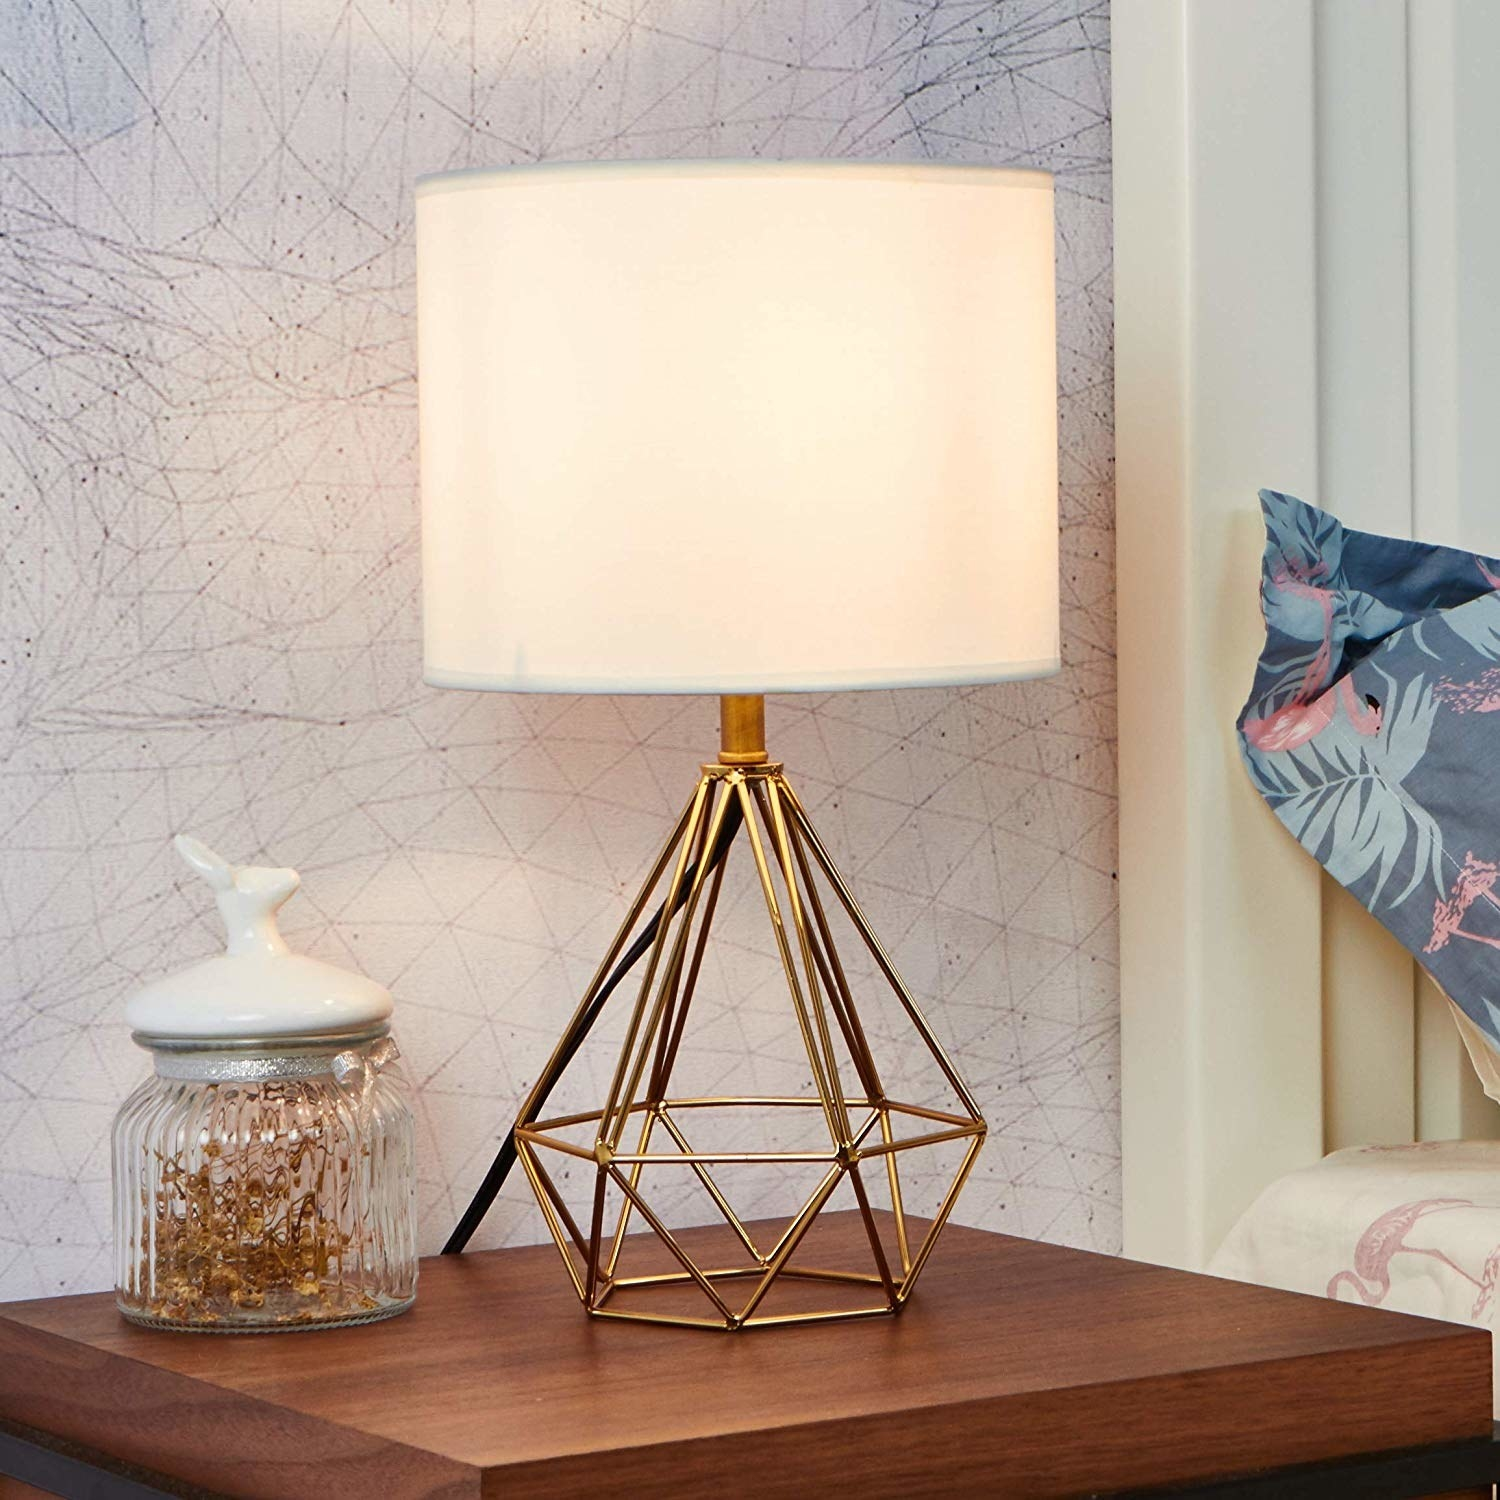 Table lamp with a gold diamond-shaped wire base and white shade